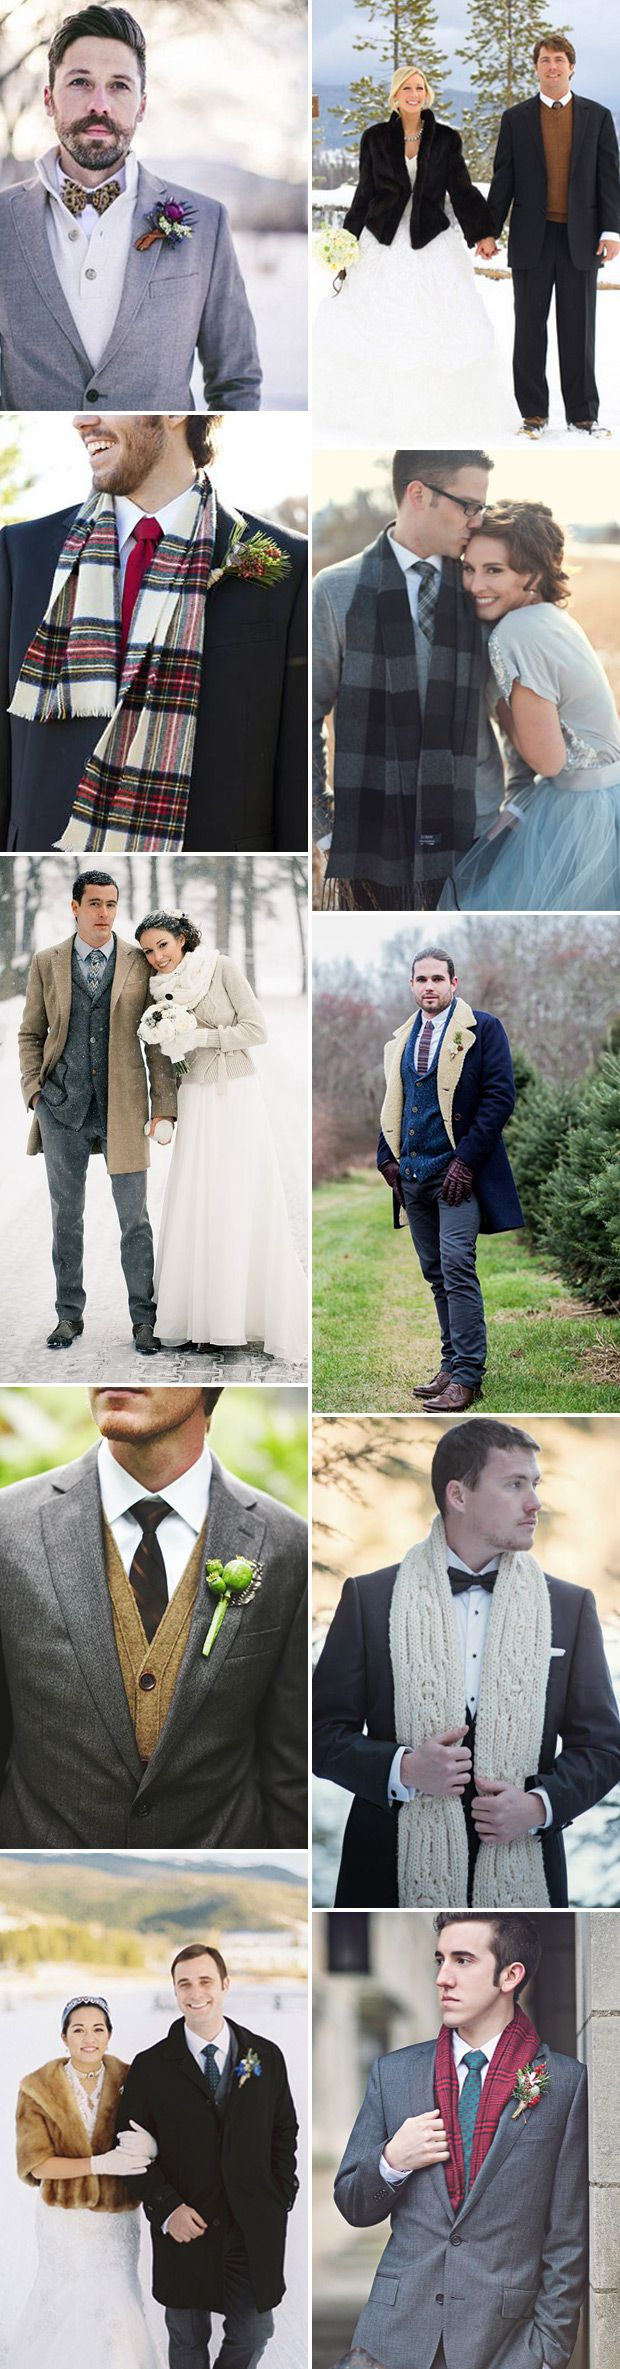 Winter Warmers | winter wedding style for the groom | www.onefabday.com